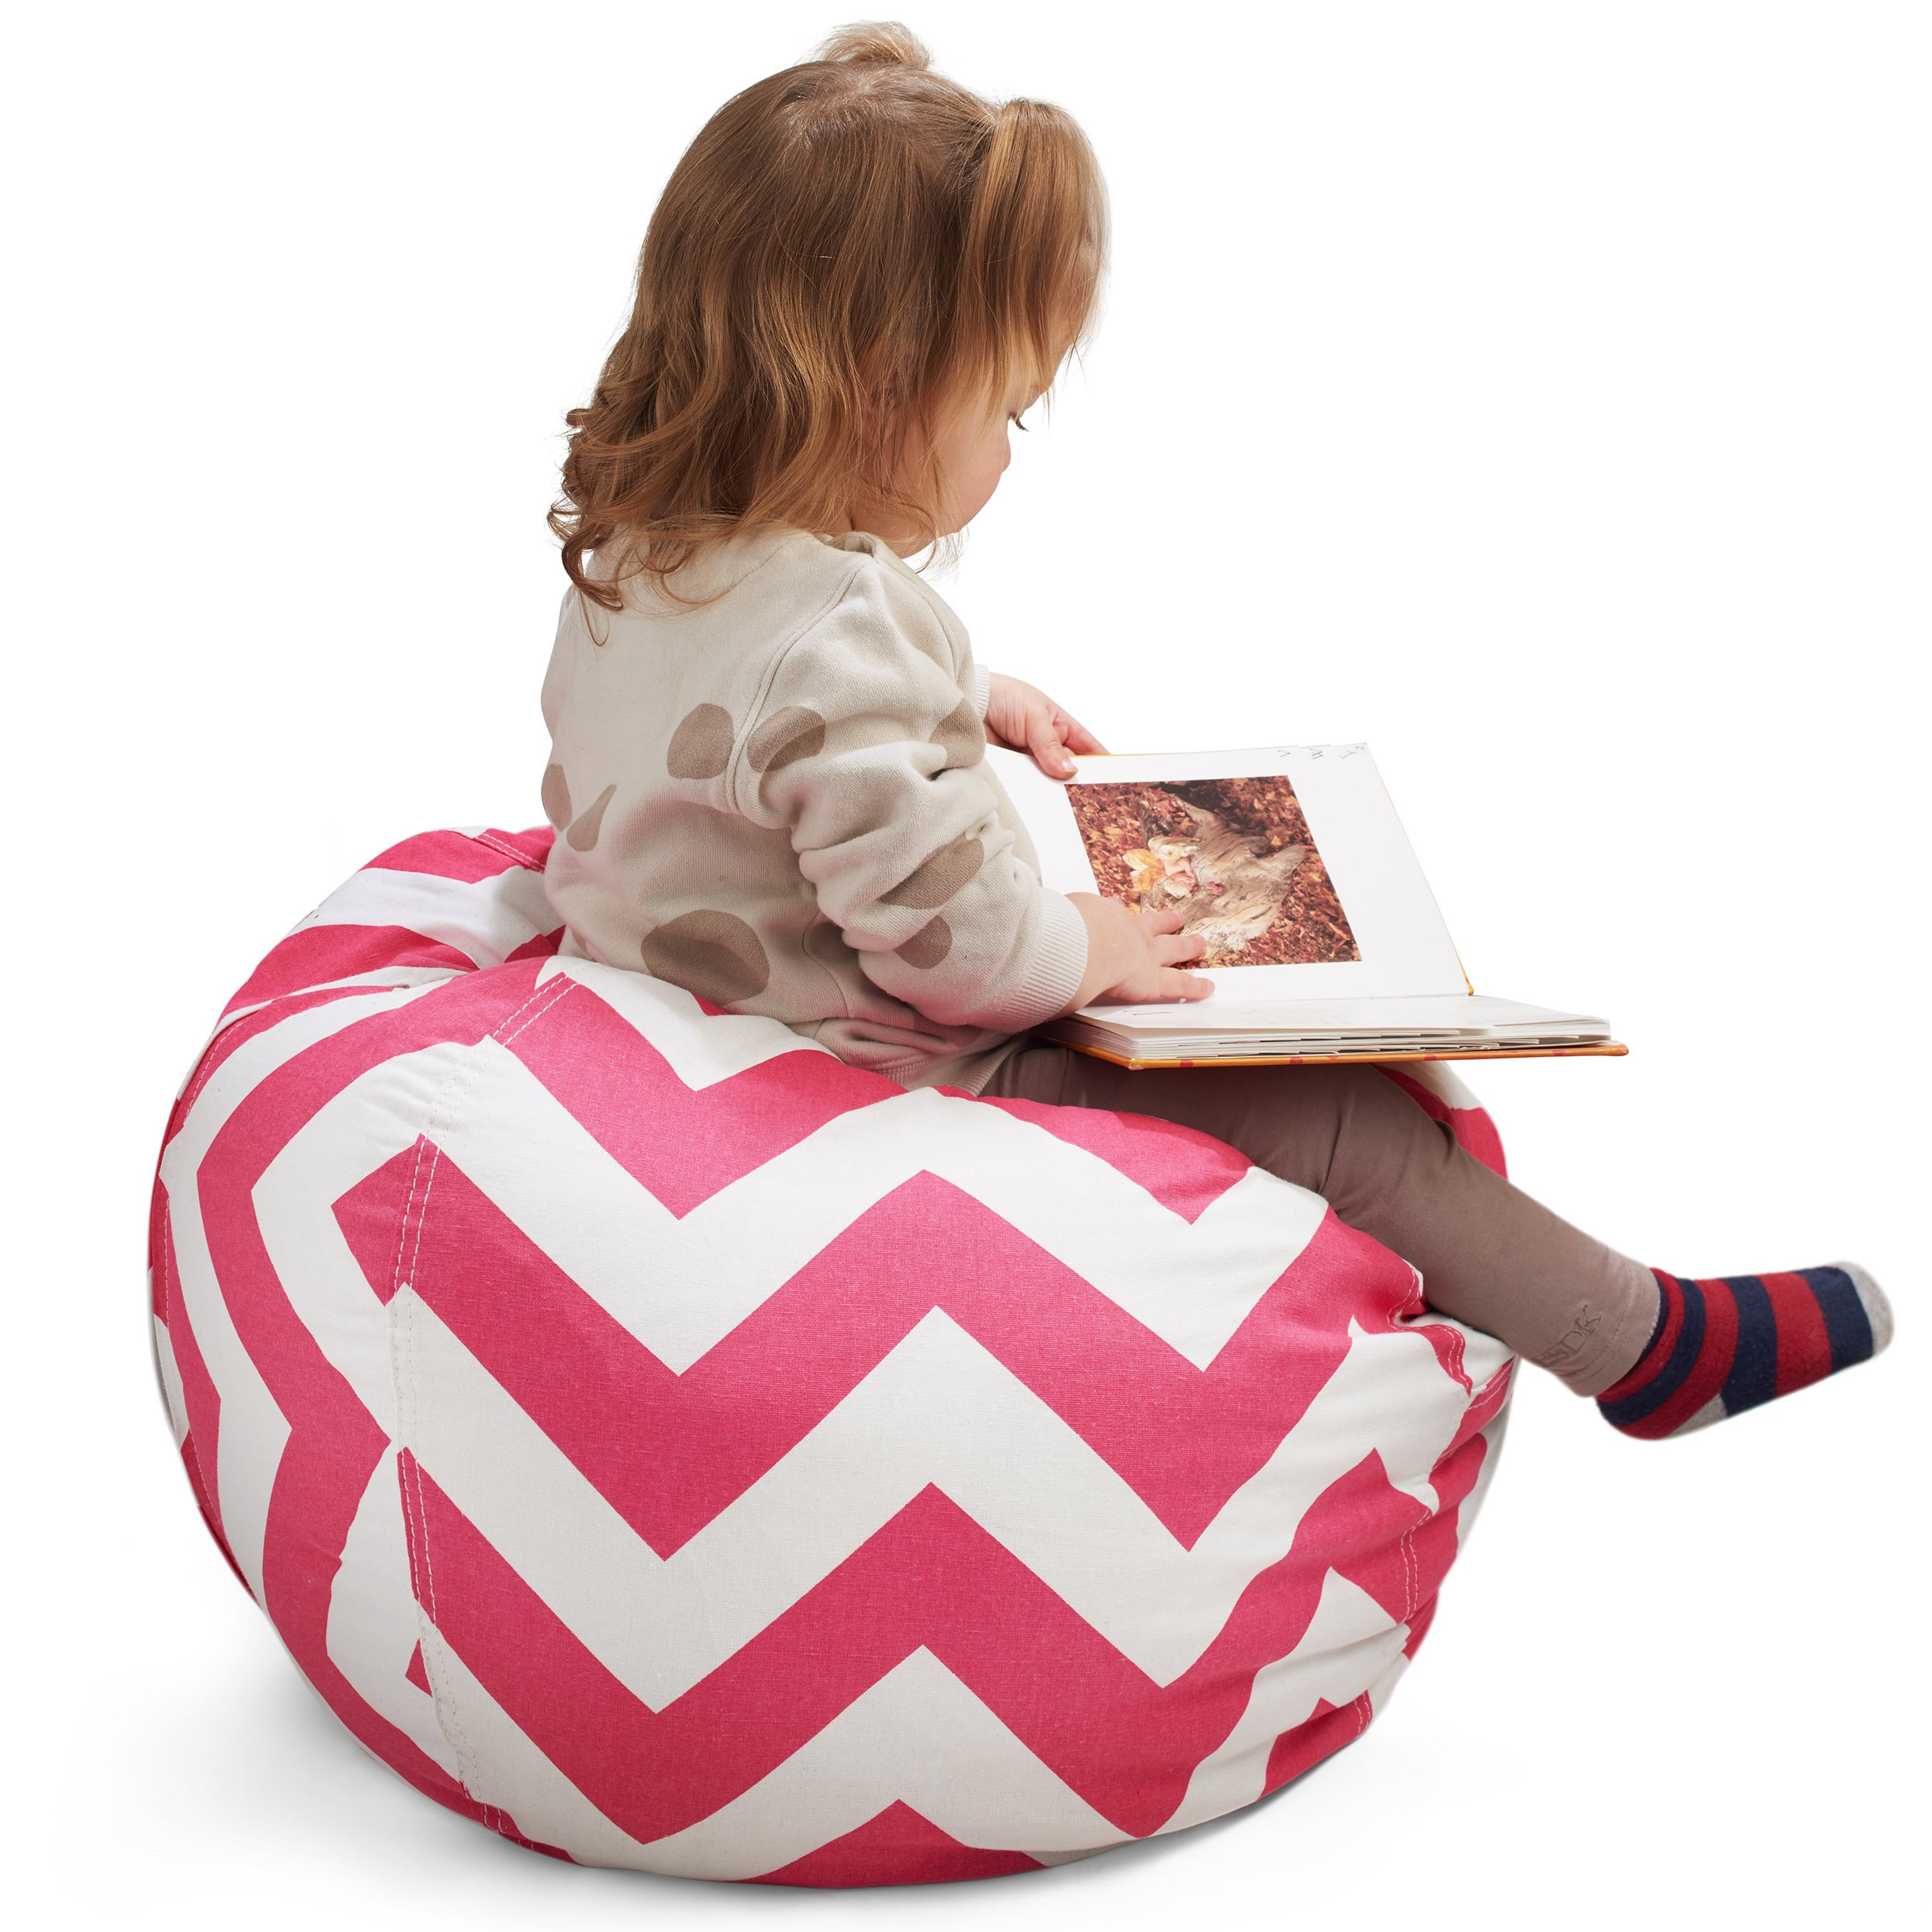 Smart Additions Bean Bag Chair - Bean Bag for Stuffed Animal Storage, Stuff and Sit Bean Bag Cover for Kids, Toy Storage Bean Bag Chair, Bright Color Zigzag Bean Bag Toy Organizer, Red - Large